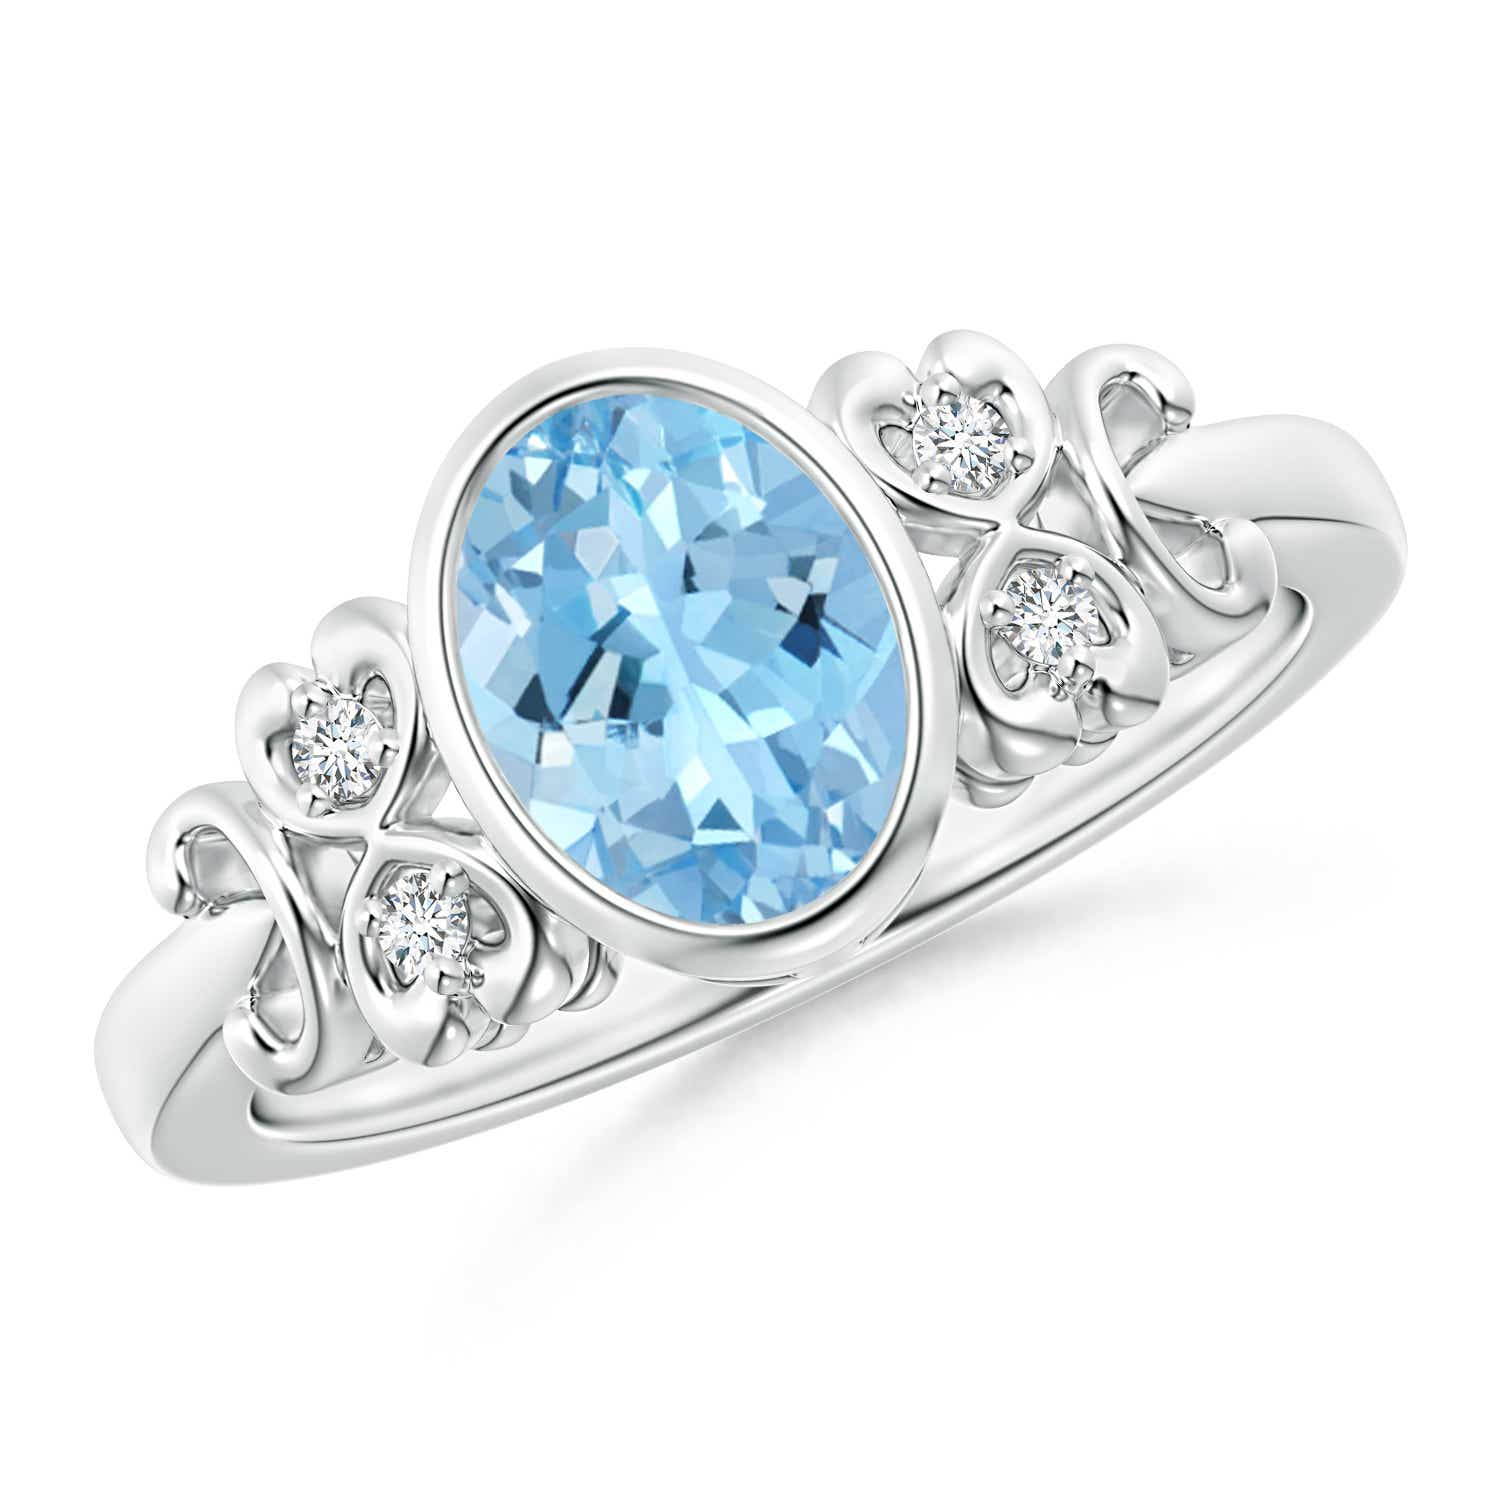 Angara Oval Aquamarine Ring with Diamond Wedding Band Set in White Gold KnA63